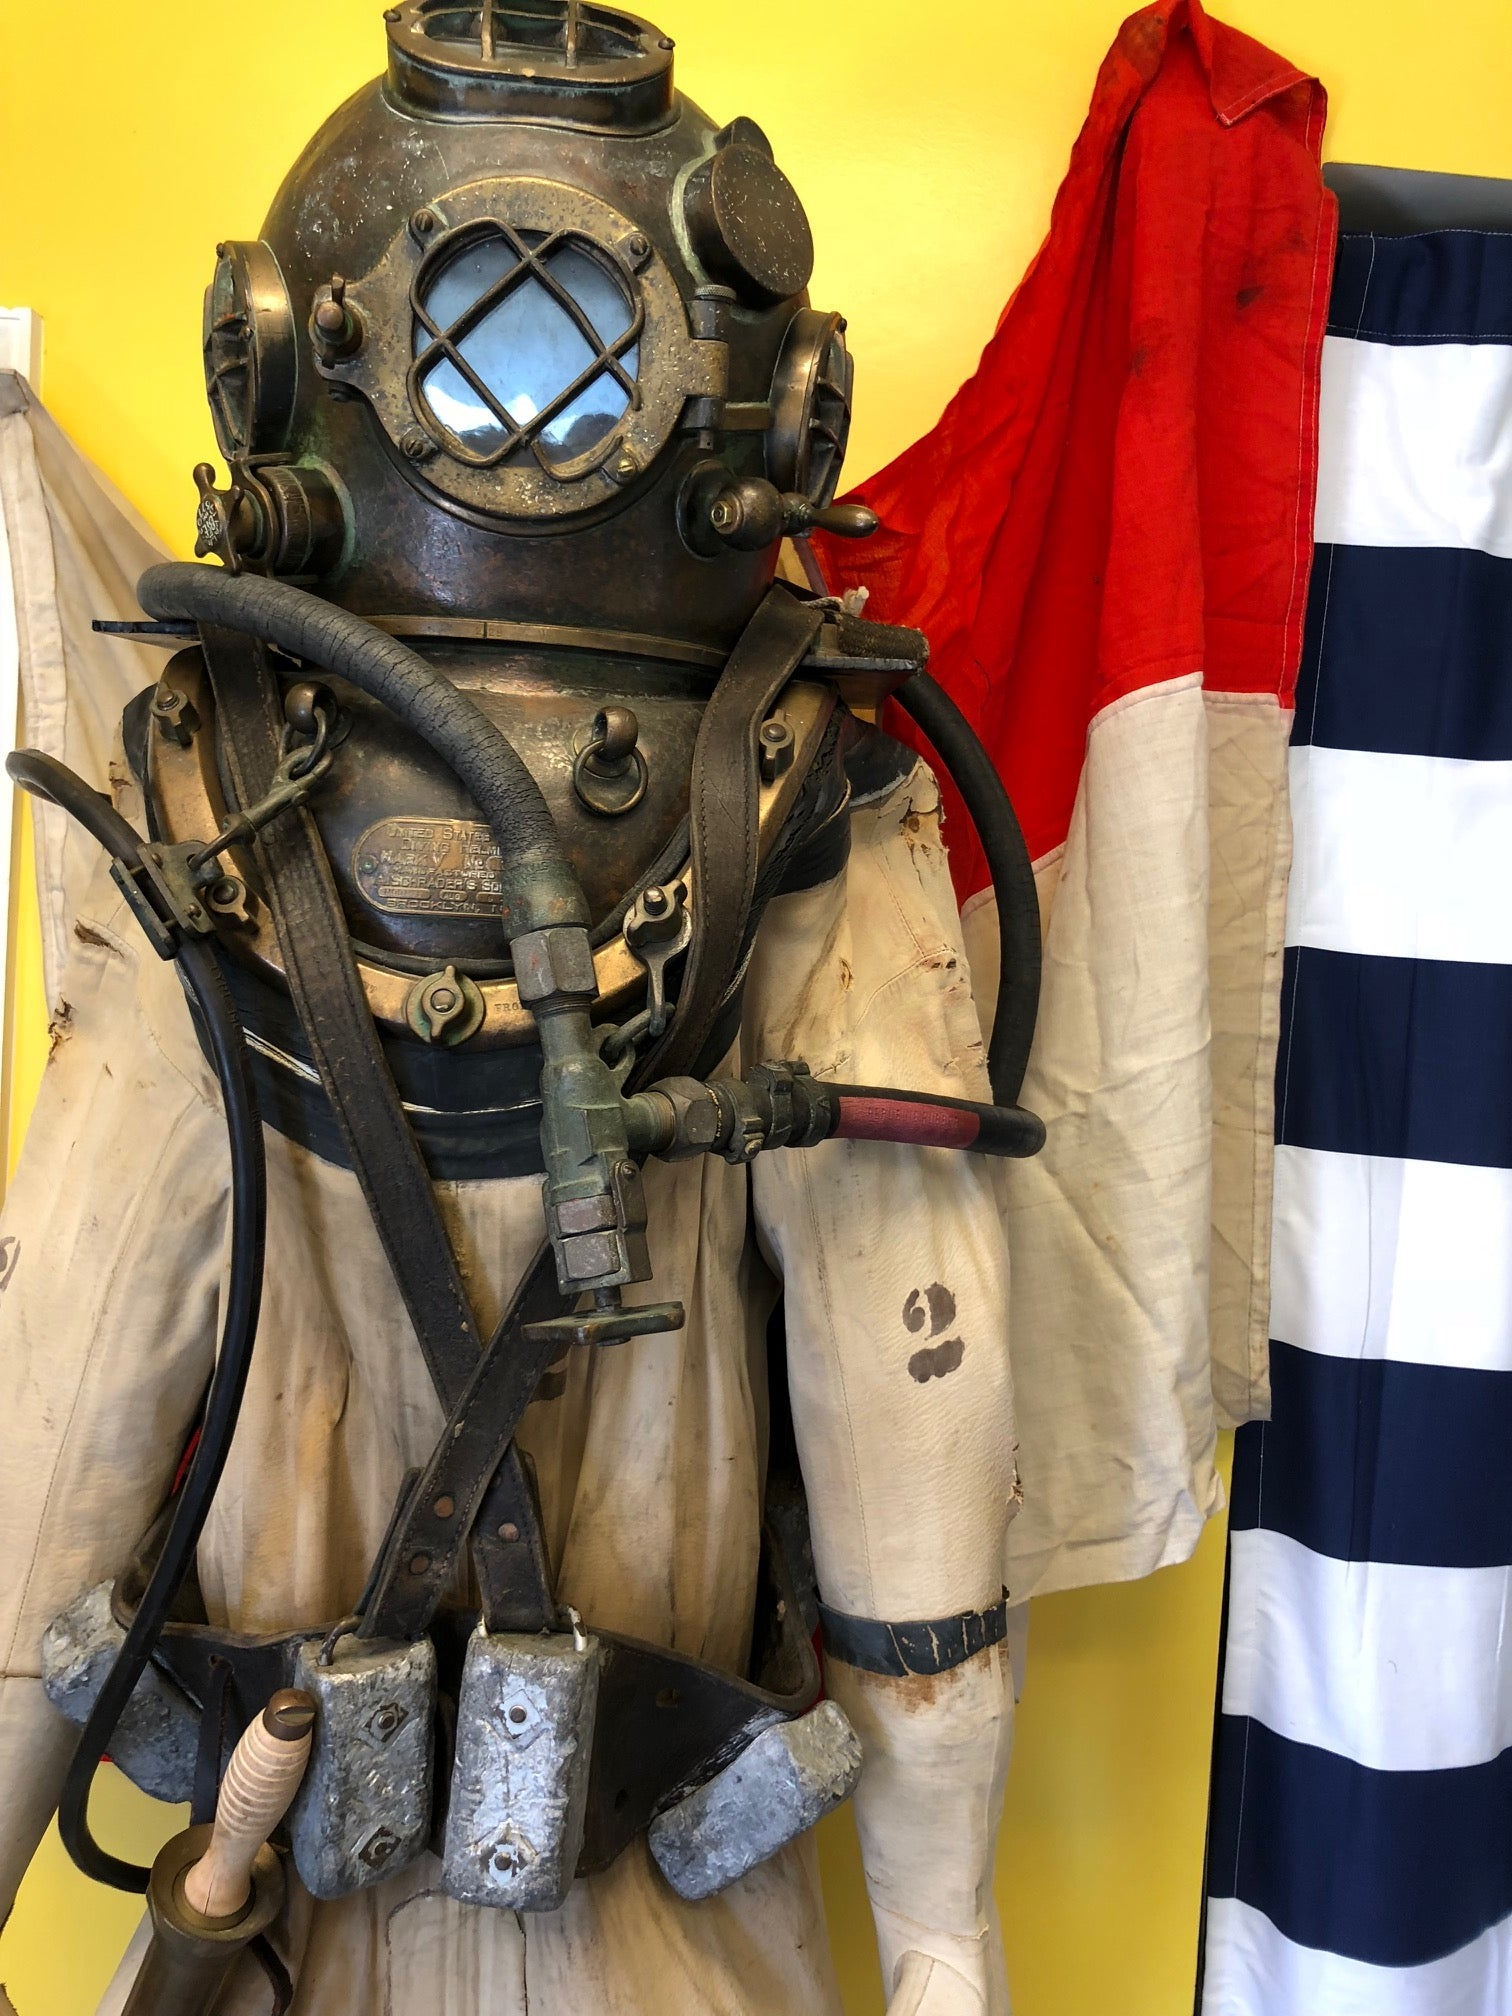 Diver Suit, Helmet, Belt, Knife, Boots, and Chestplate